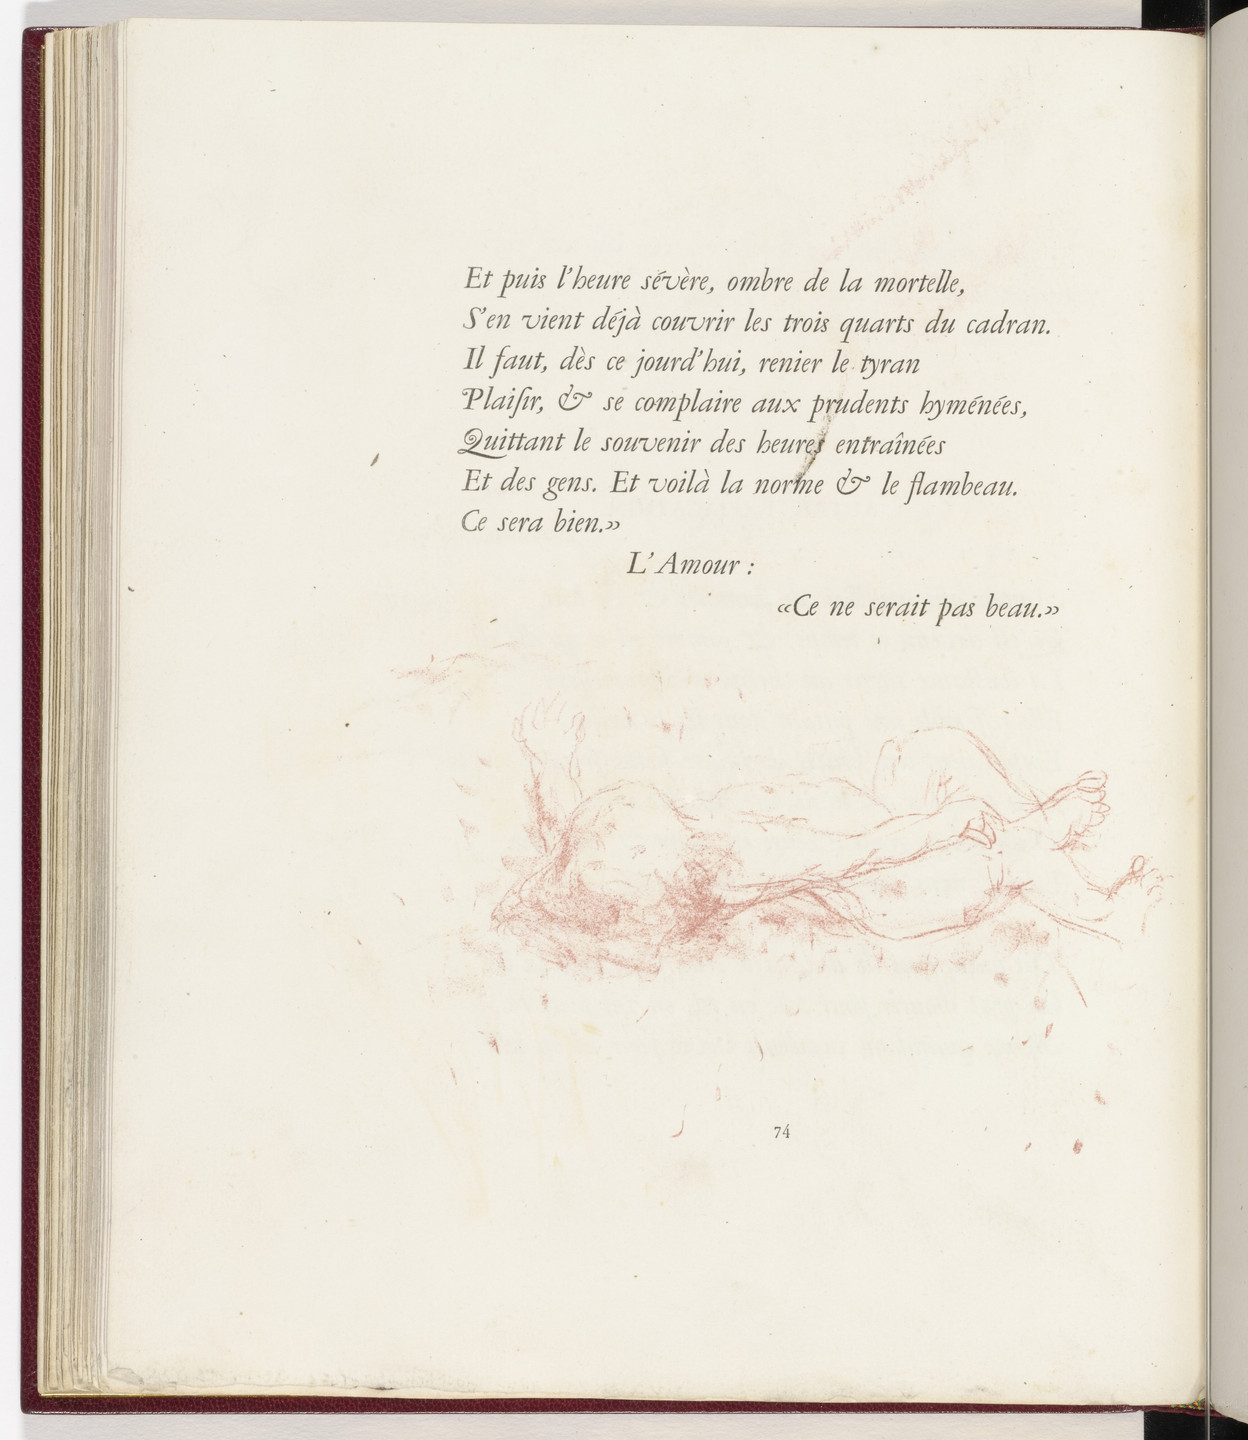 Pierre Bonnard. In-text plate (page 74) from Parallèlement (In Parallel). 1900